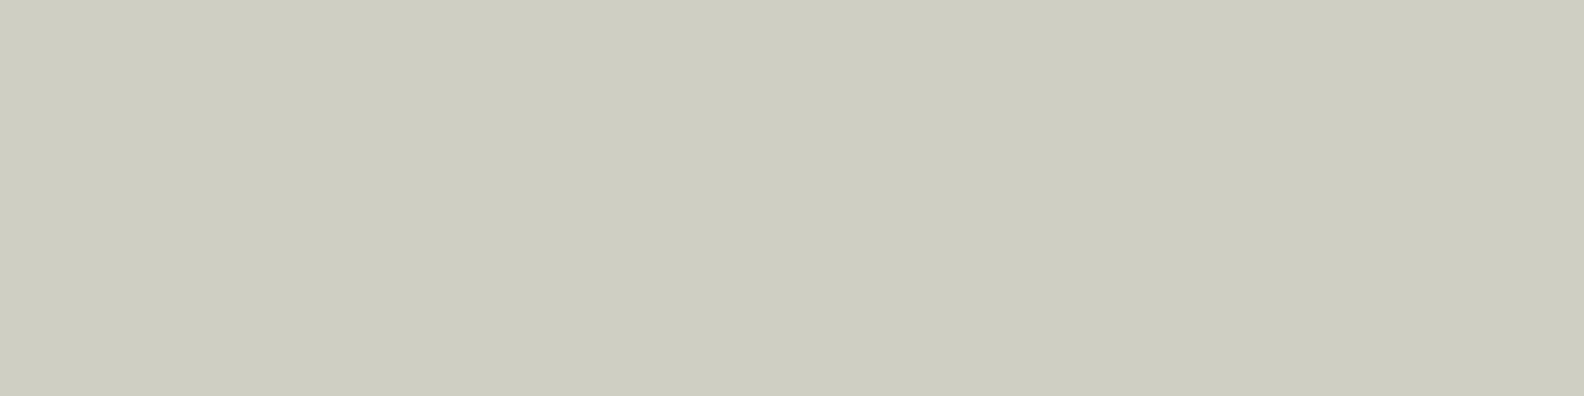 1584x396 Pastel Gray Solid Color Background